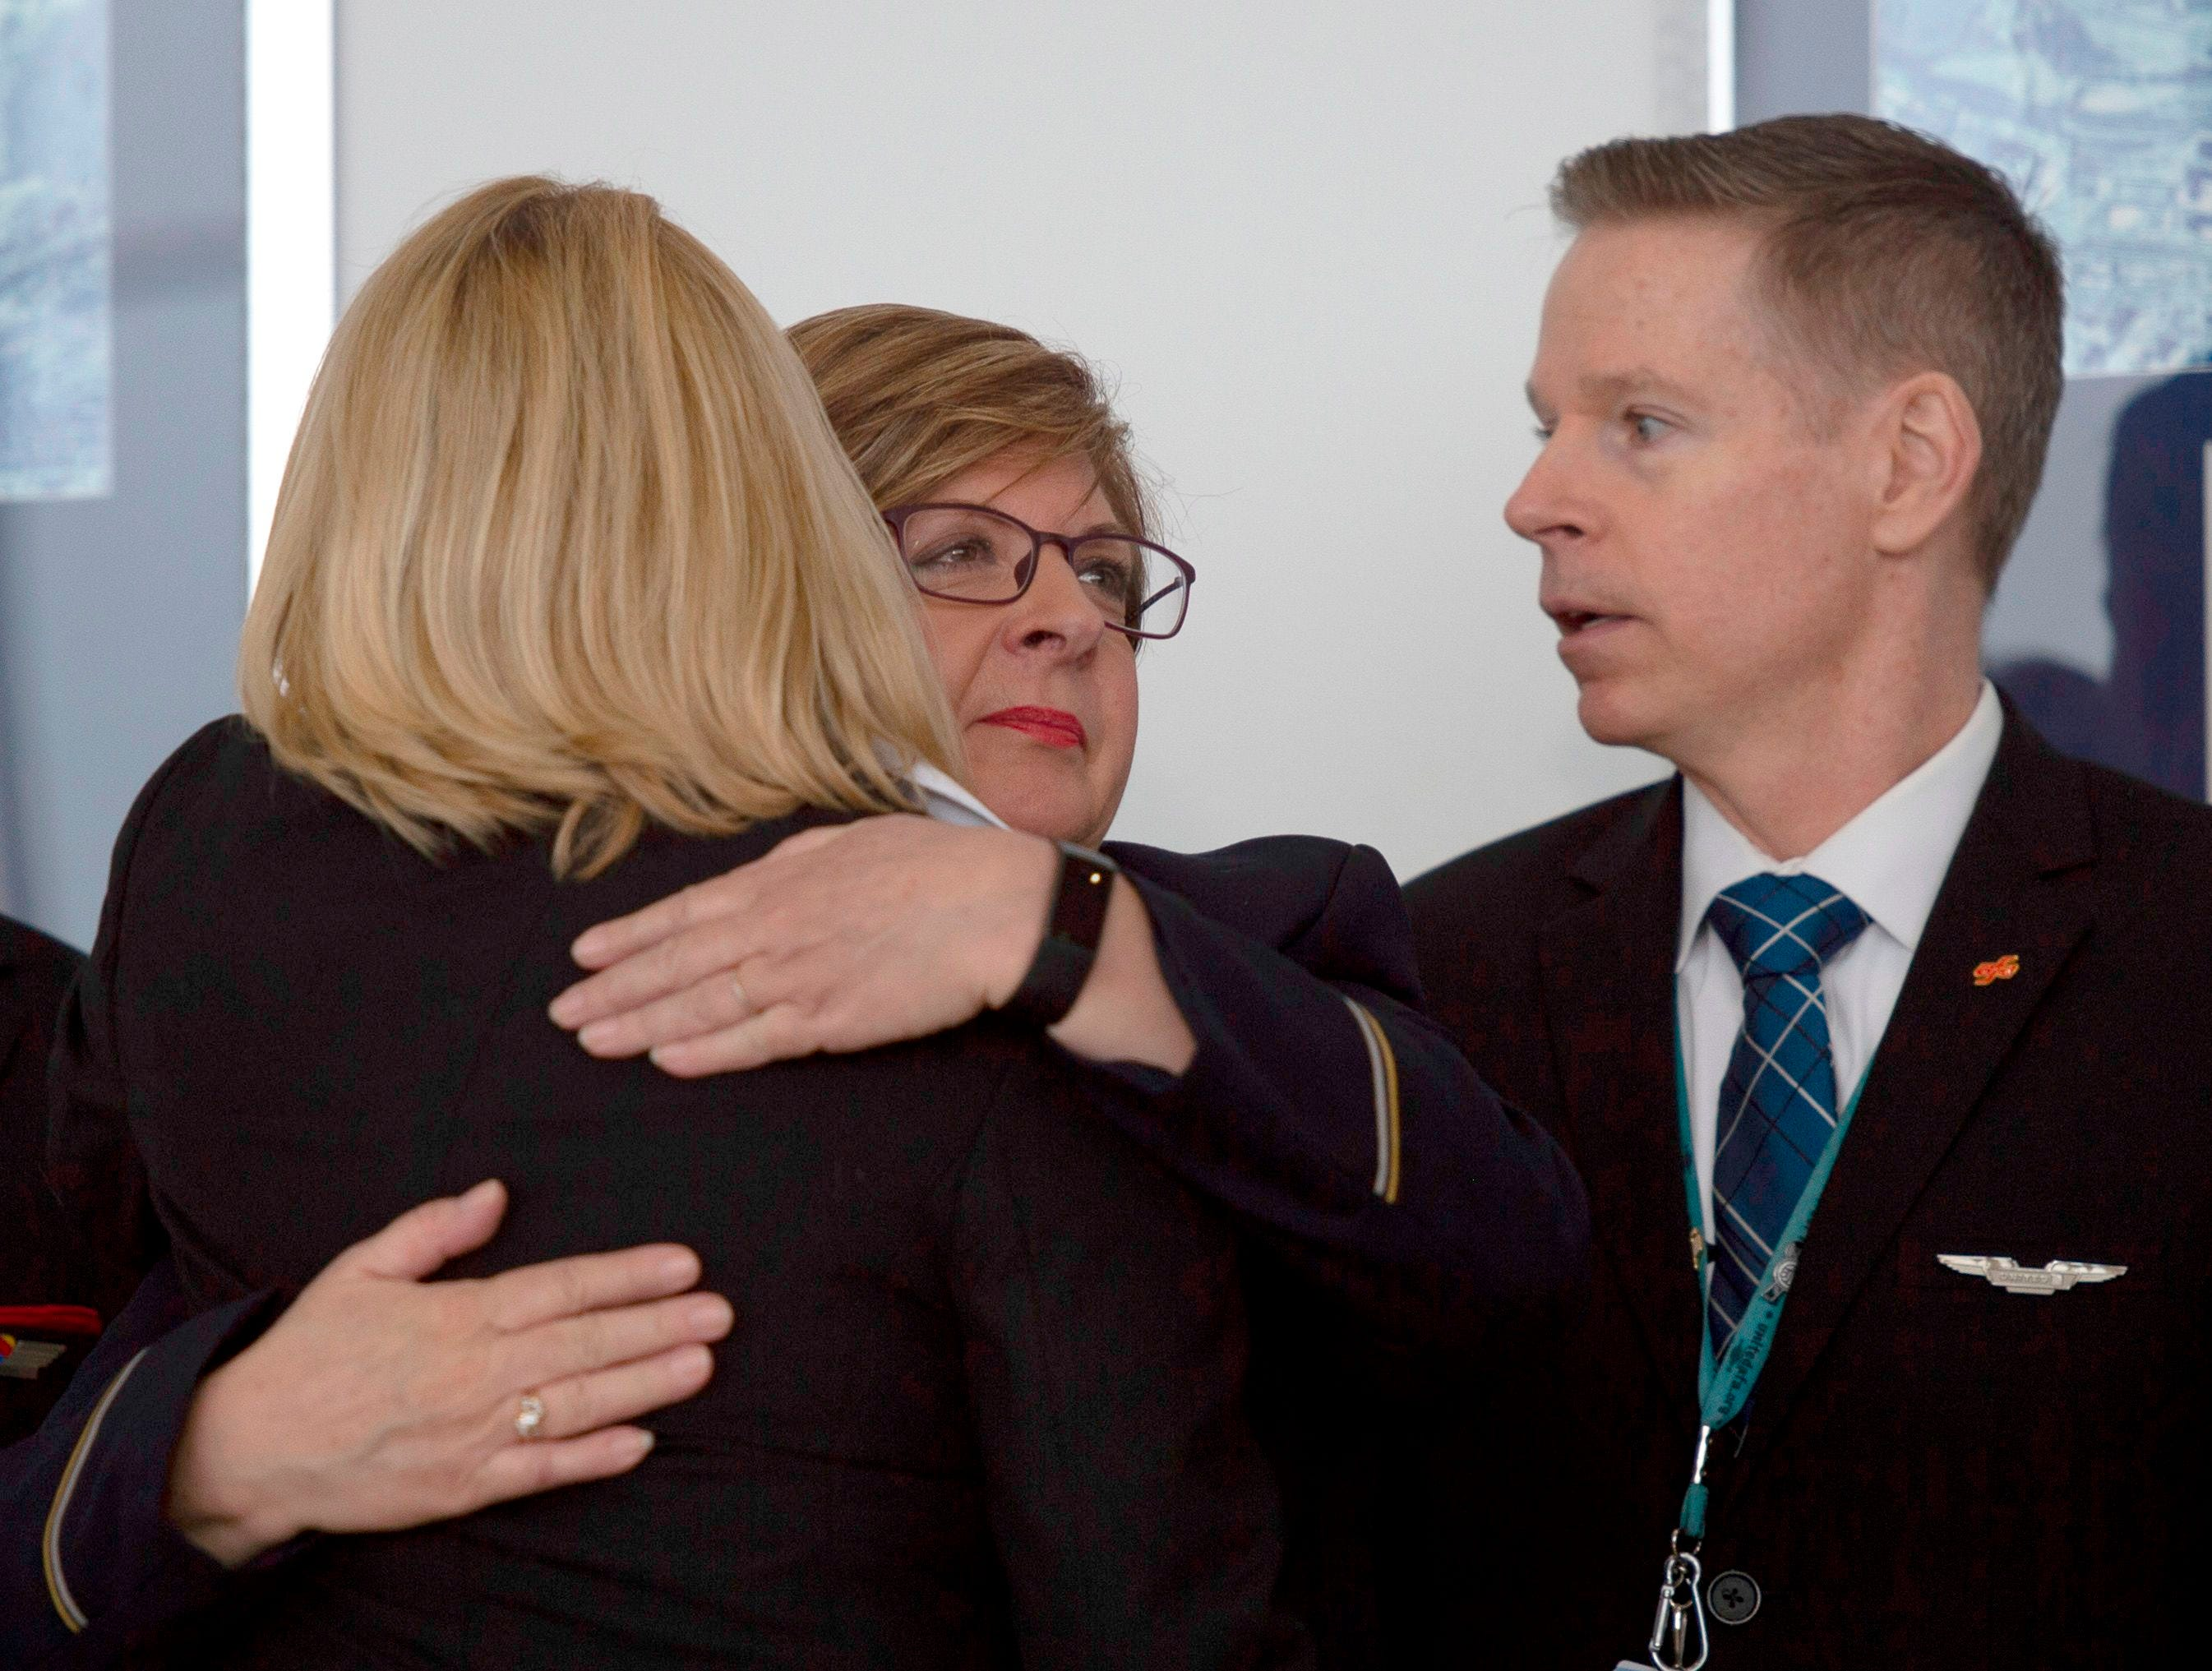 Airline employees hug before a press conference on aviation safety during the shutdown at Ronald Reagan Washington National Airport in Arlington, Va. on Jan.24, 2019.